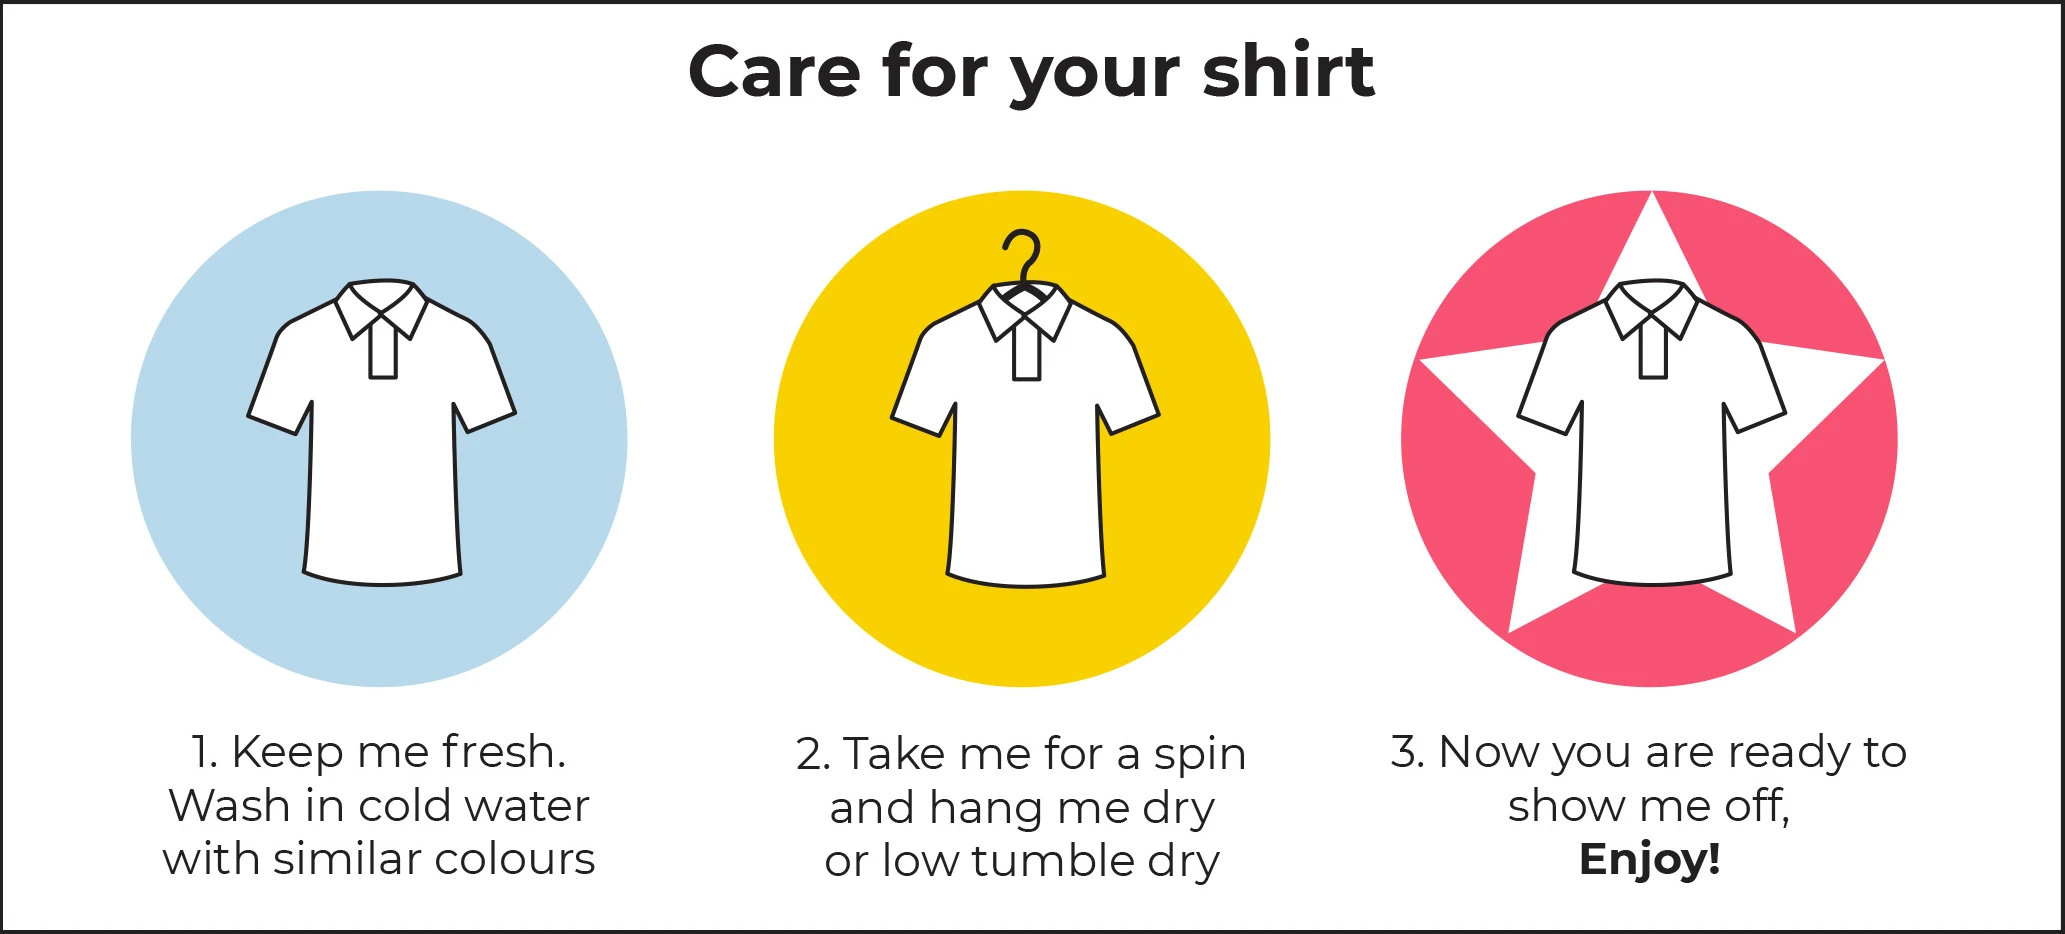 druh care for your shirt